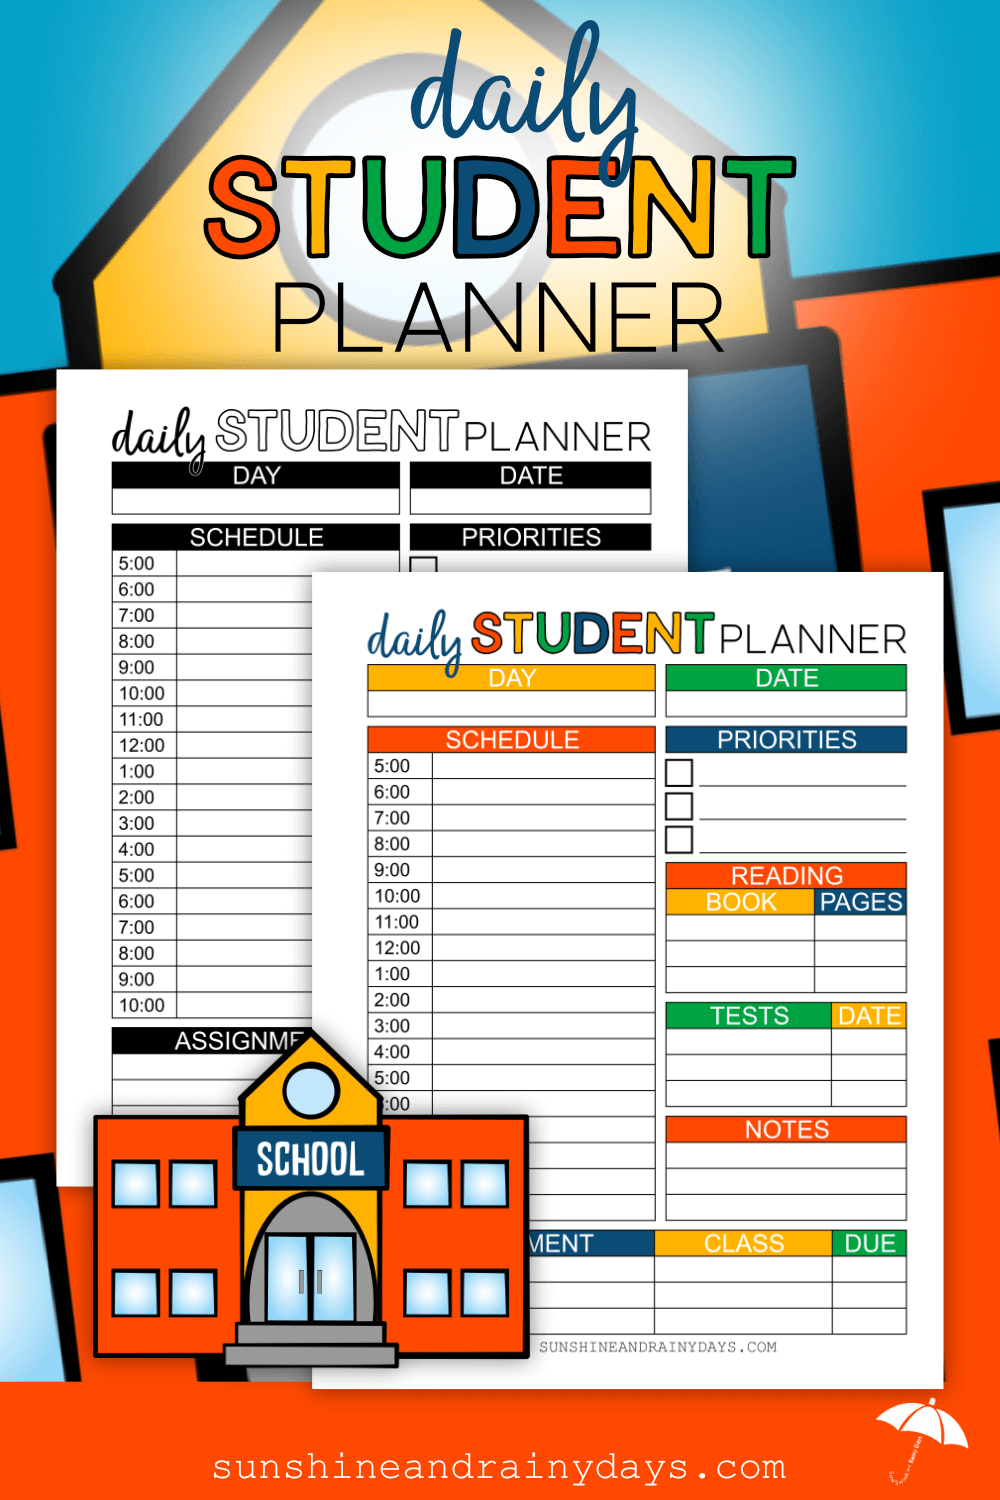 Daily Student Planner in color or black & white